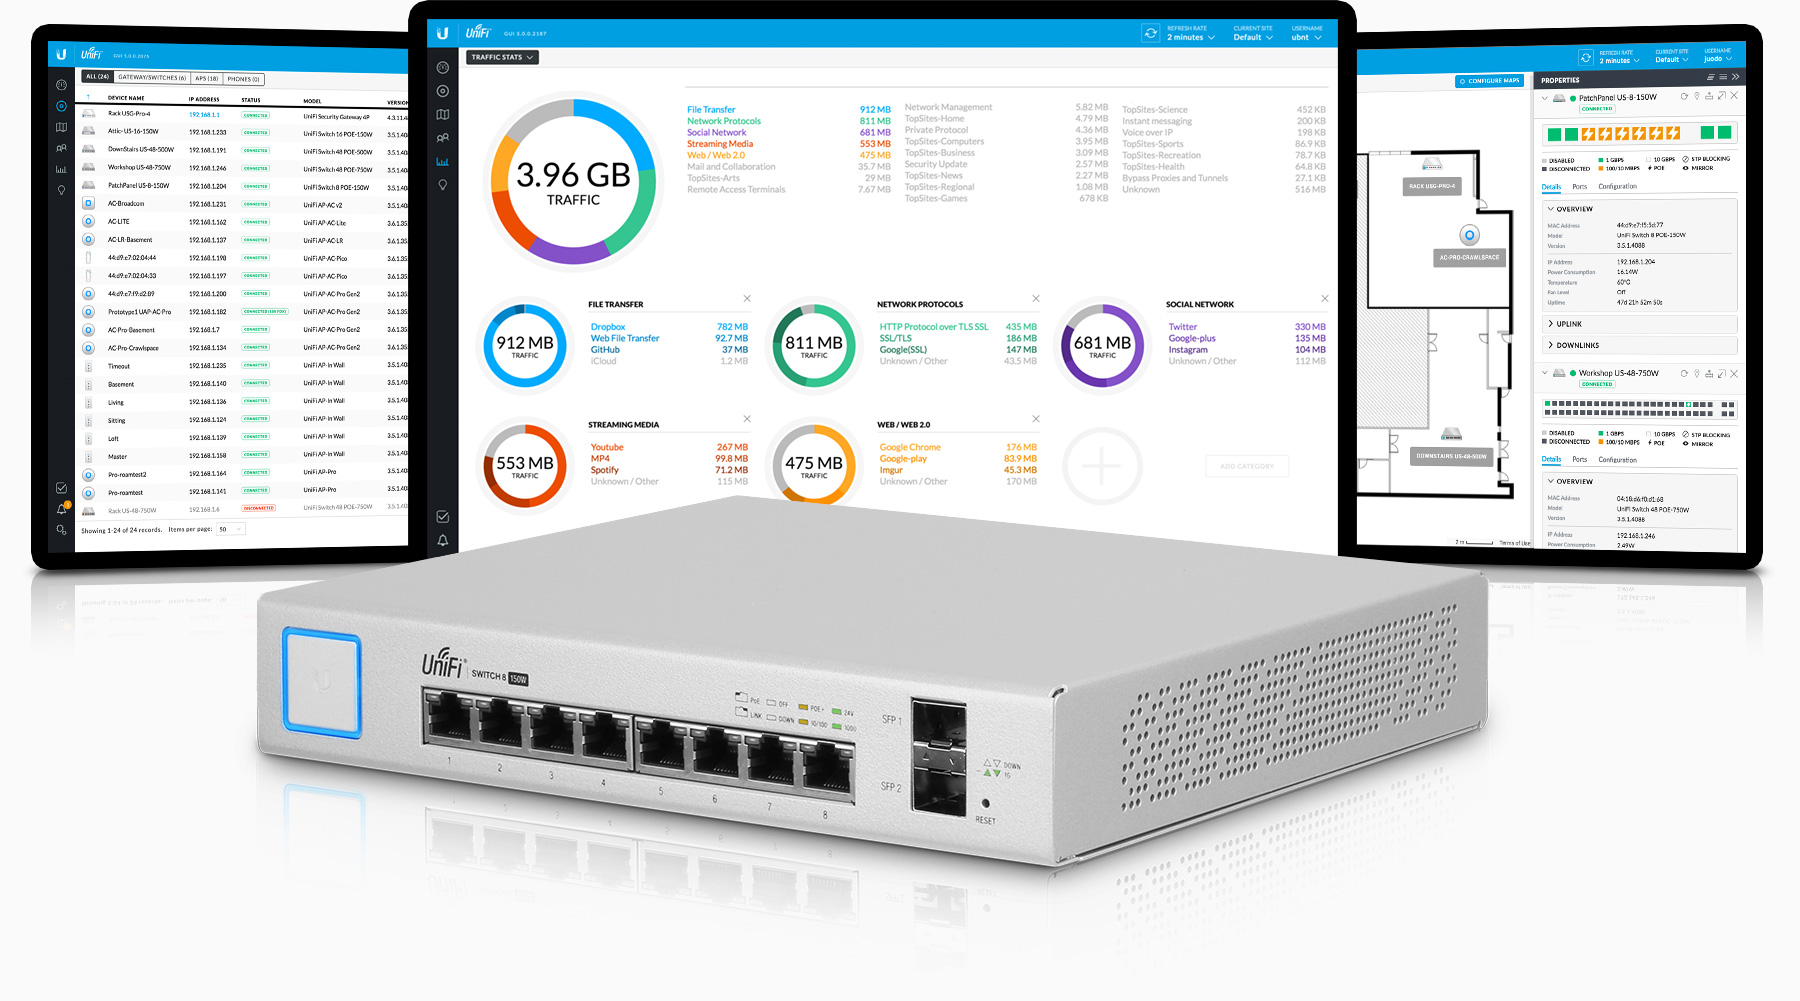 Ubiquiti Networks Unifi Switch 8 150w Home Blog Product Highlights Poe Network For Ip Camera Review The Compact Can Be Placed On A Desktop And Integrates With Controller Software Centralized Management Of Your Devices